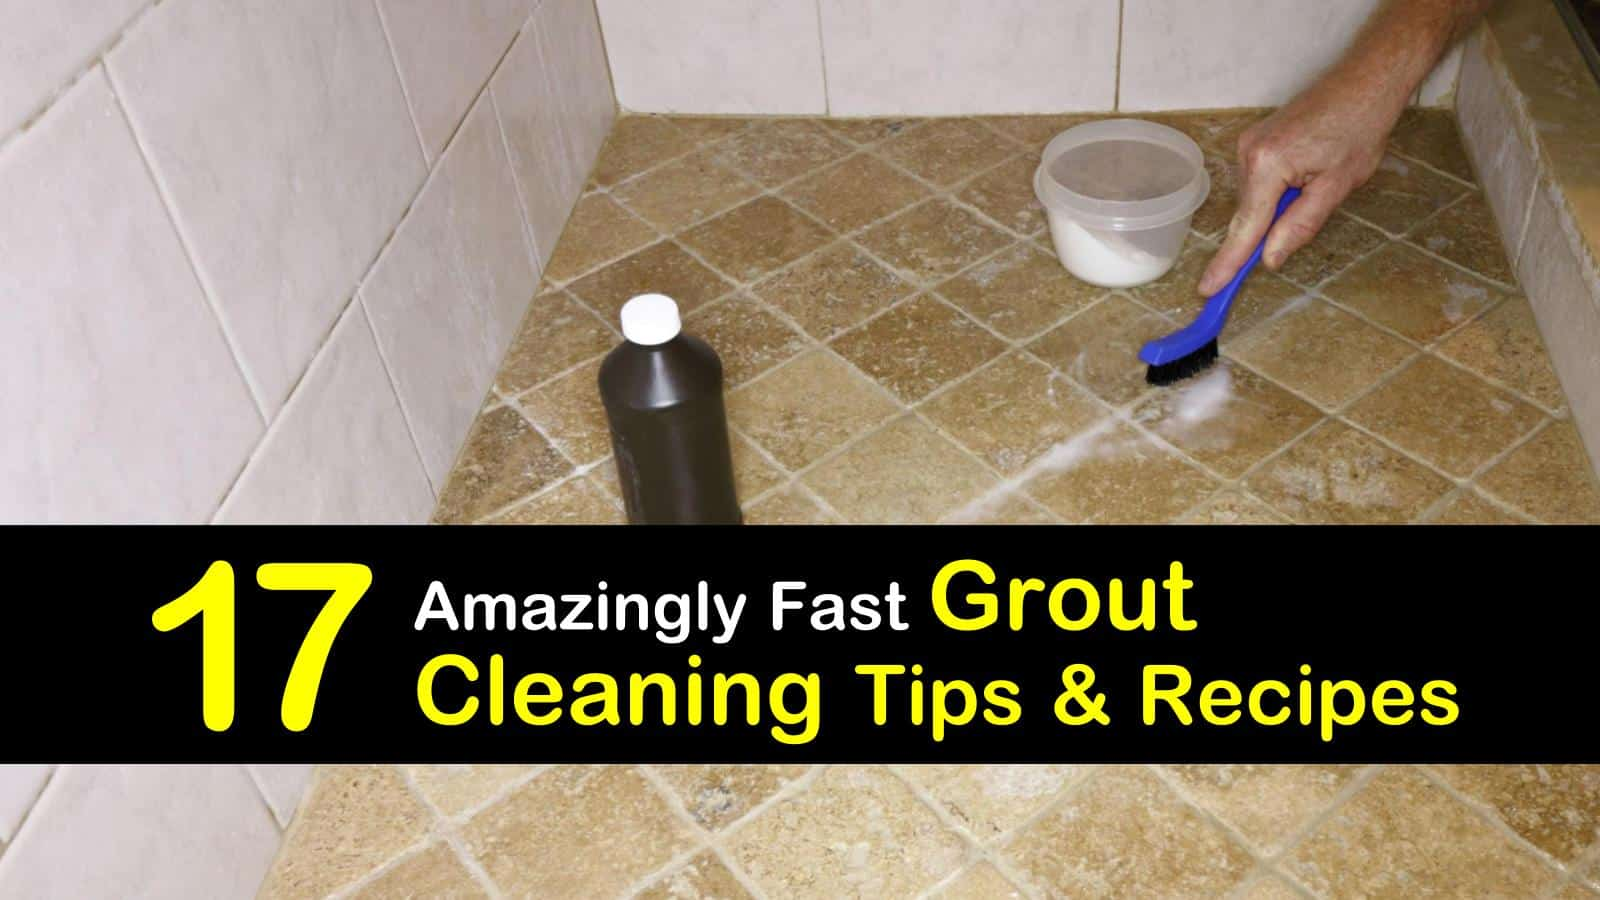 How To Clean Grout 17 Grout Cleaning Tips And Recipes To